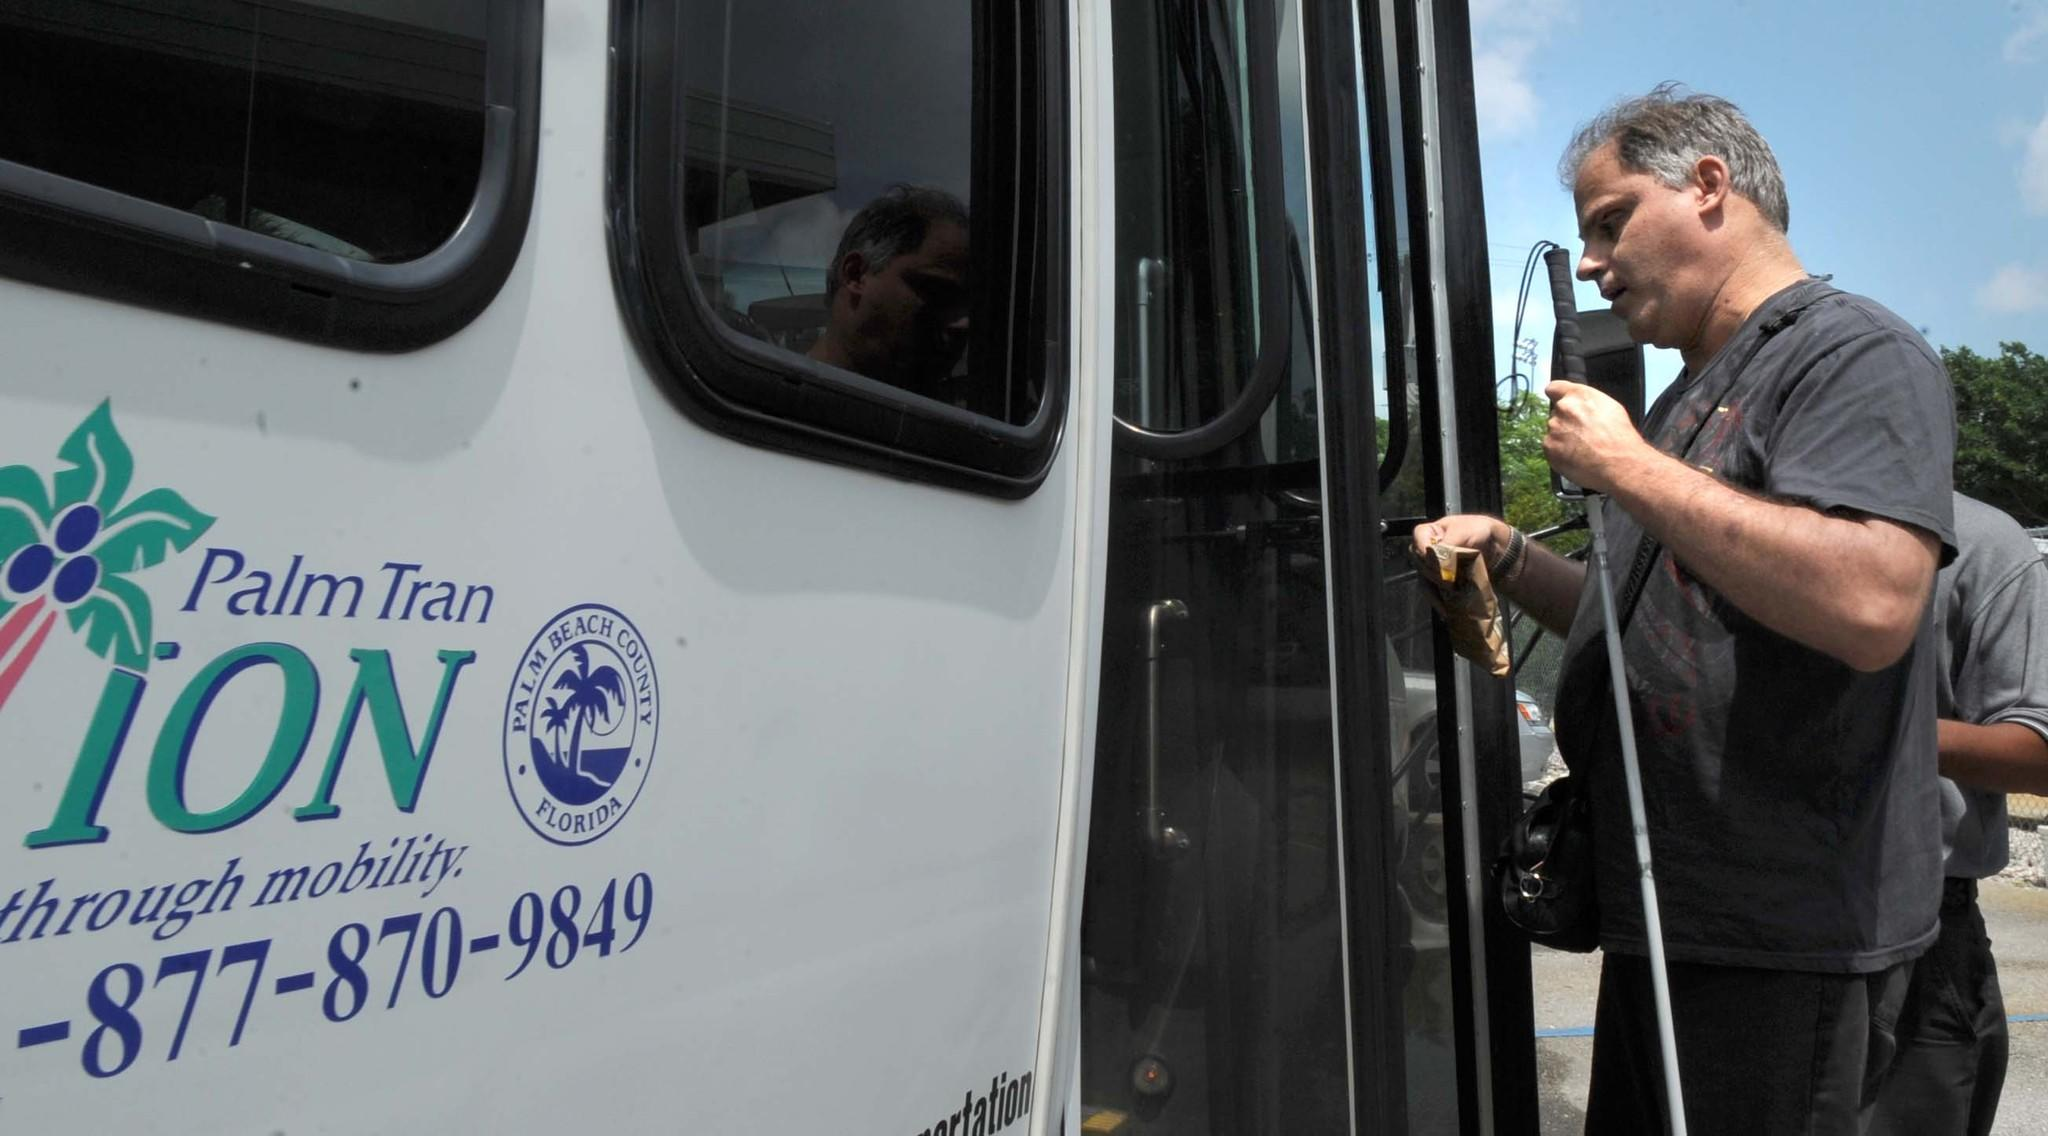 Palm Beach County commissioners are considering adding a minimum pay requirement for the outsourced drivers at Palm Tran Connection, the county's door-to-door busing service for the disabled and elderly.